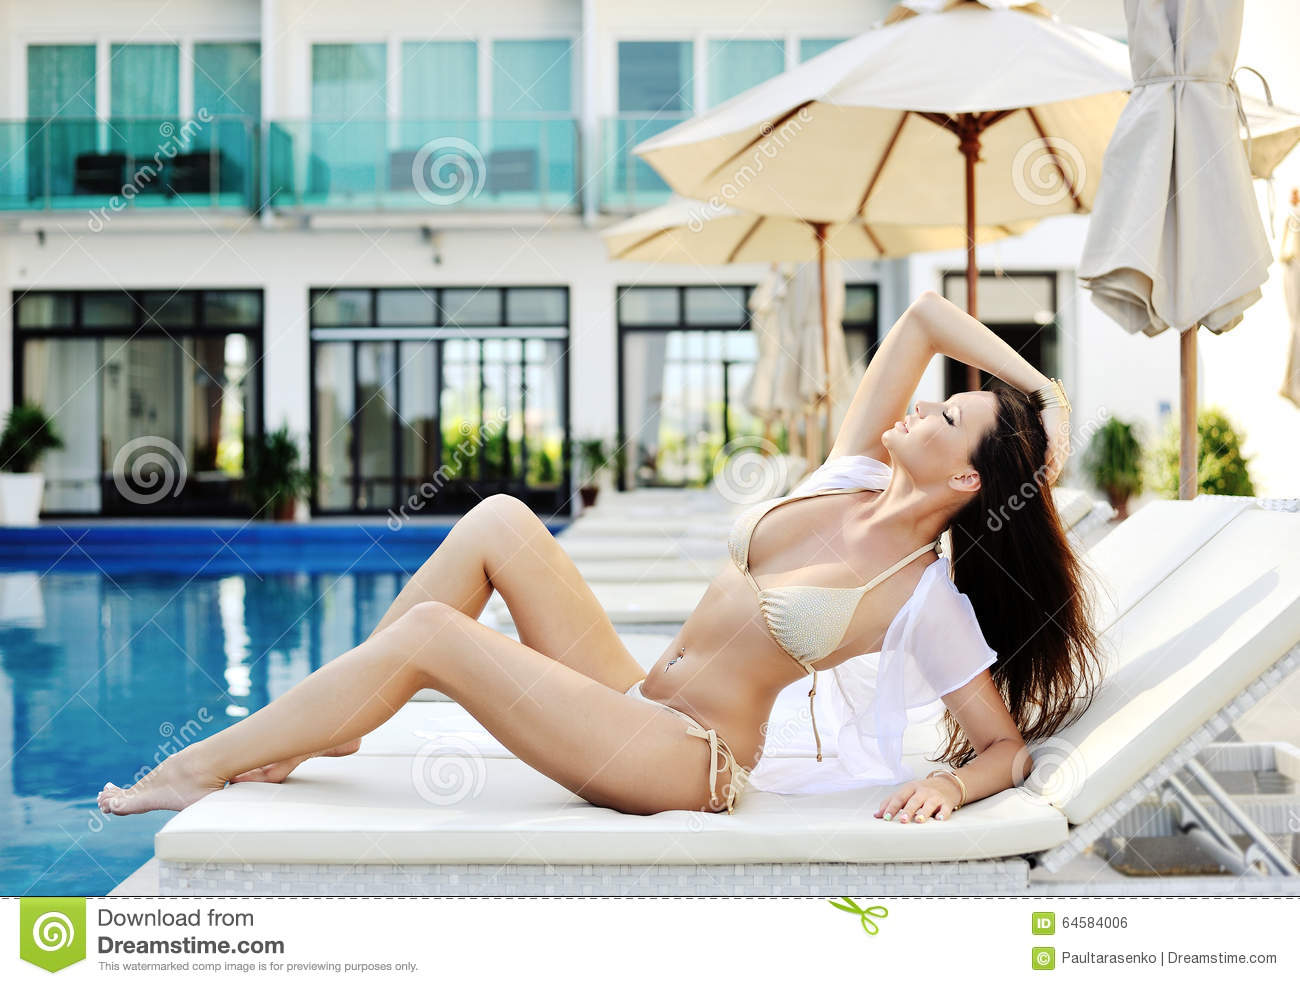 Woman Chaise Longue The Background The Pool At The Hotel Stock